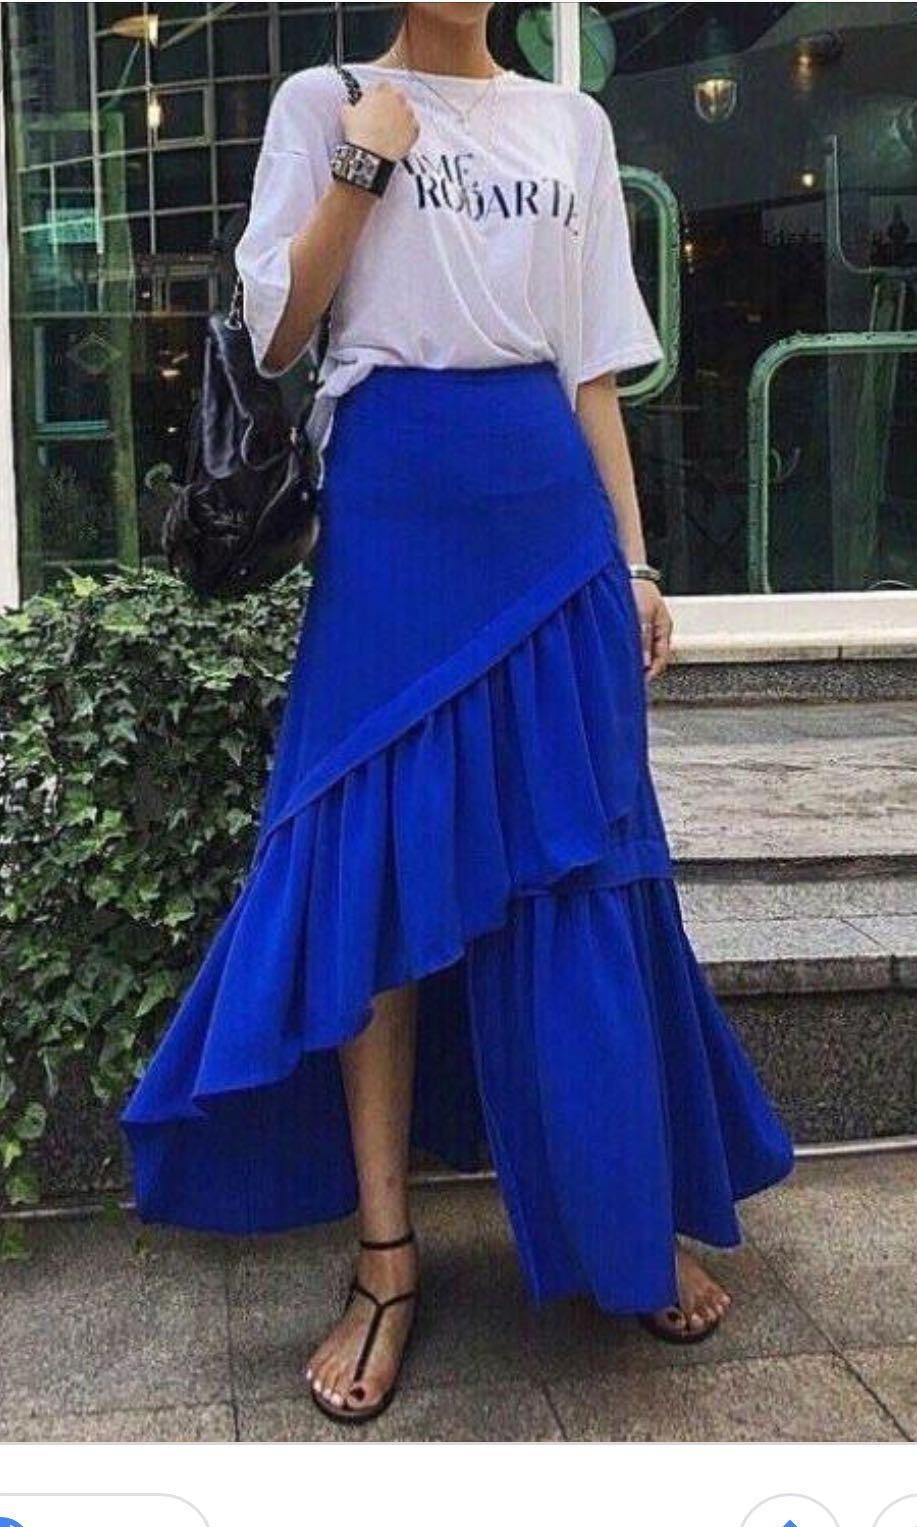 946b4261a1b7 KSisters 3 layered skirt in blue, Women's Fashion, Clothes, Dresses & Skirts  on Carousell